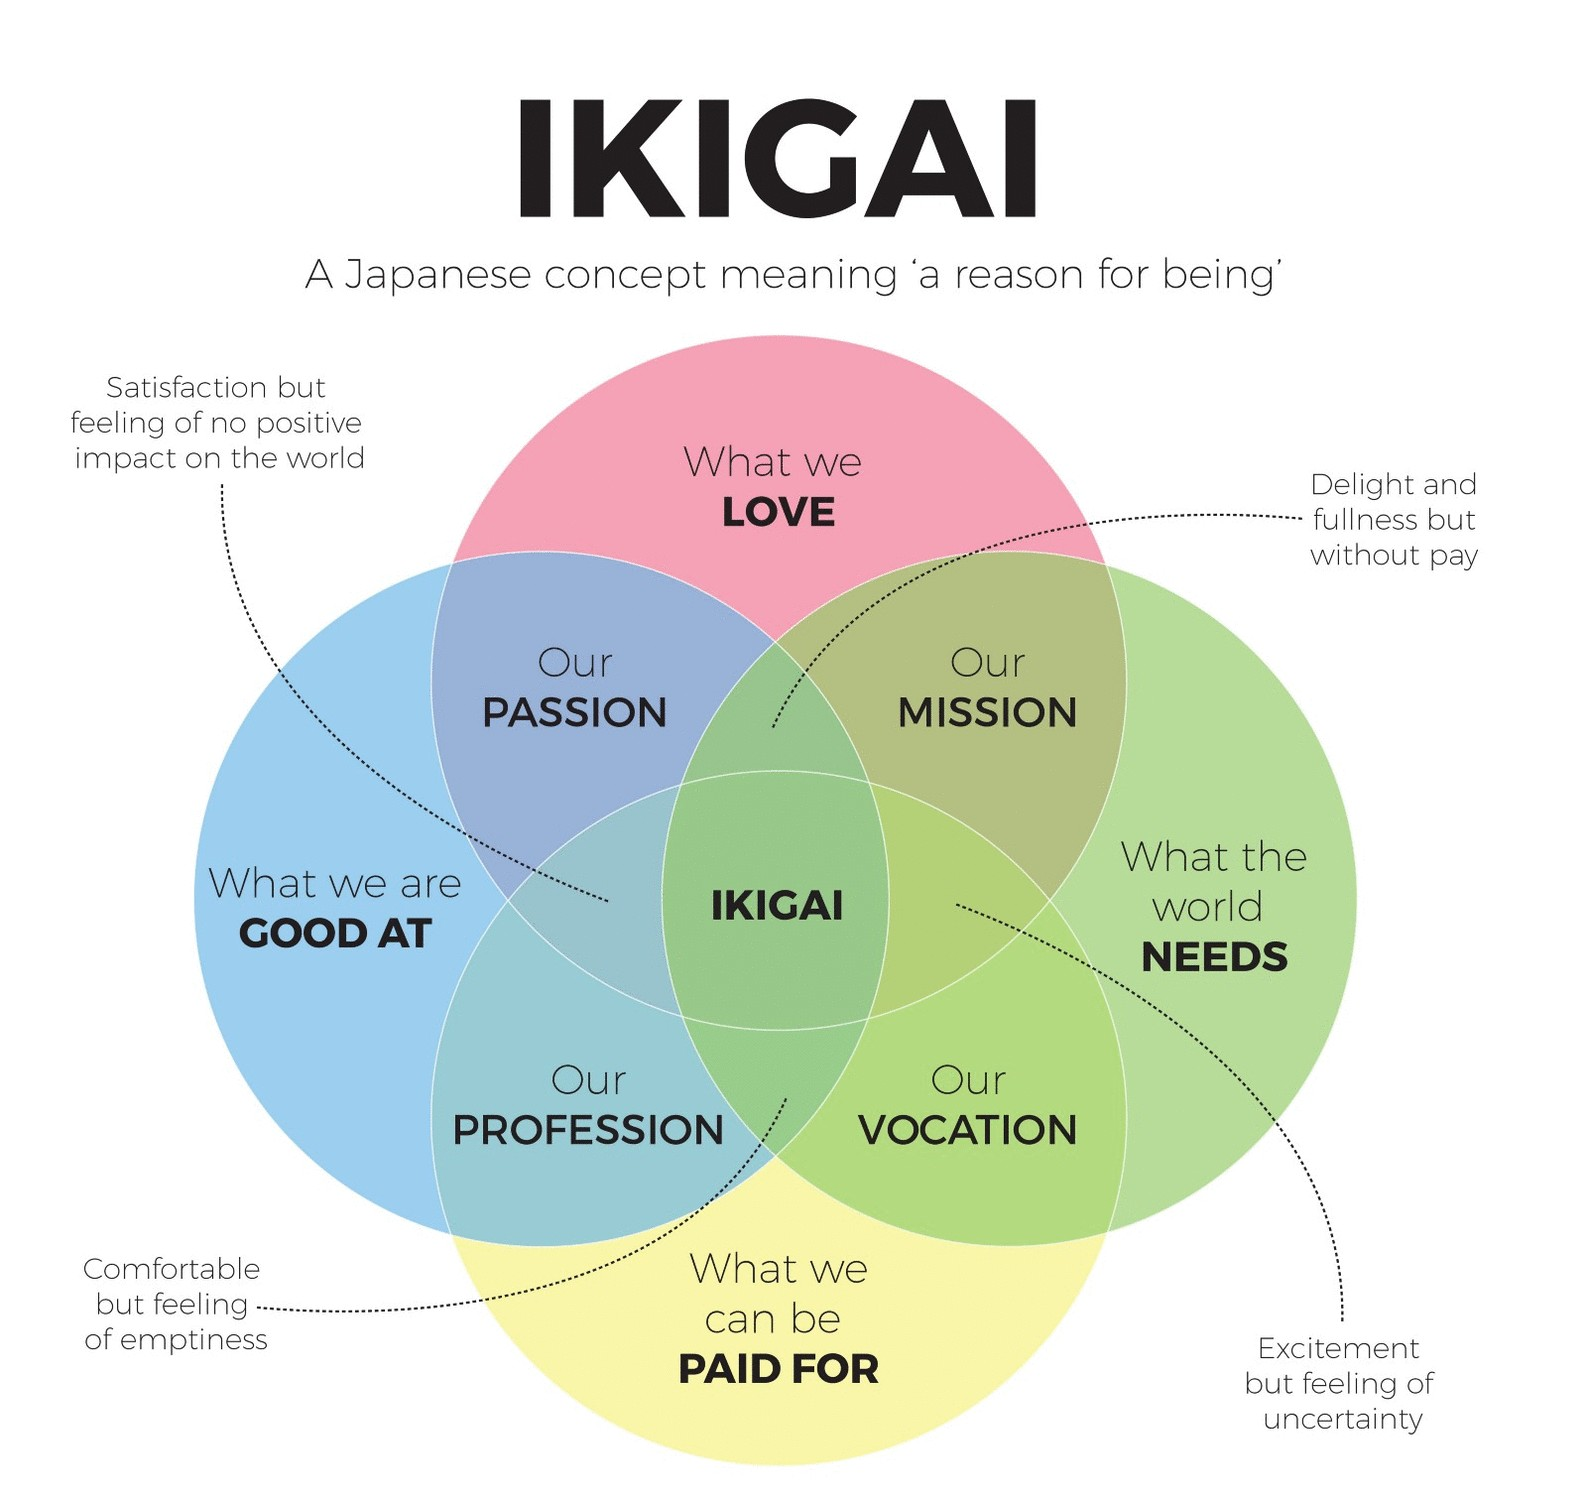 Above is a venn diagram demonstrating the concept of Ikigai - the circles overlap to demonstrate the aspects of your life you need to examine to discover your reason for being. They cover: what we are good at, what we can be paid for,our profession, our vocation, what the world needs, what we love, our mission and our passion.